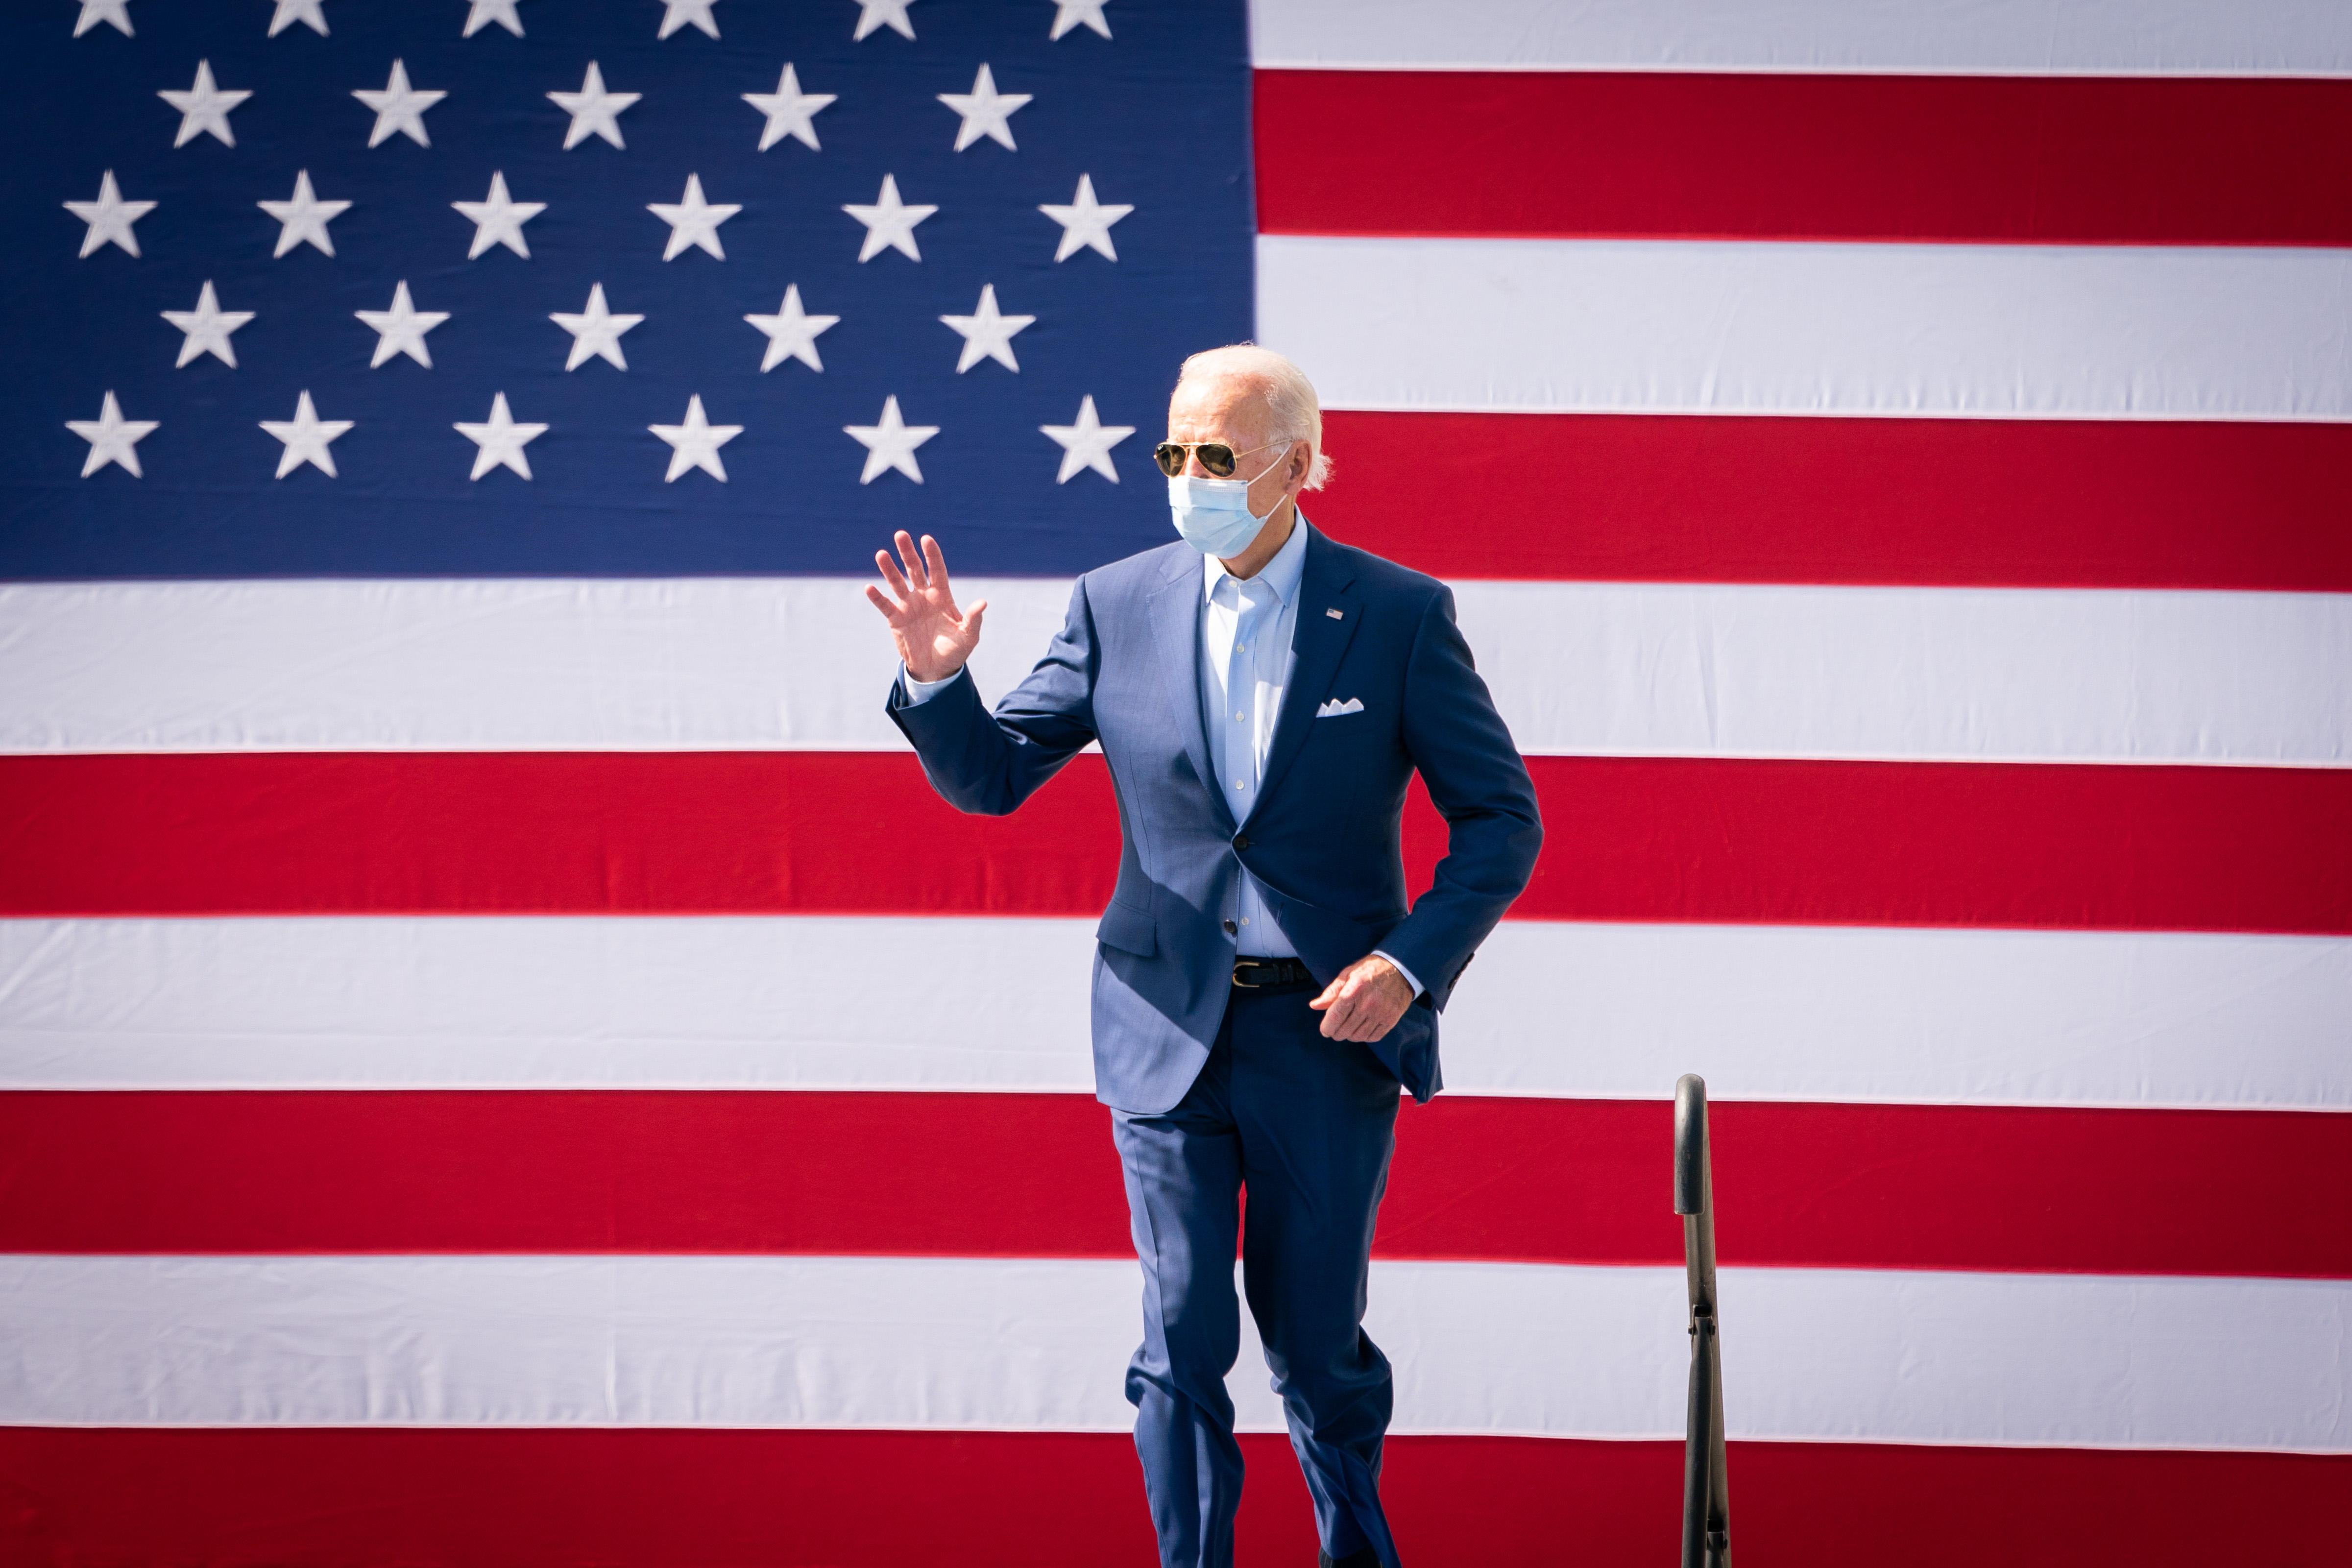 Joe Biden waves to a crowd of supporters at a campaign rally while wearing a mask